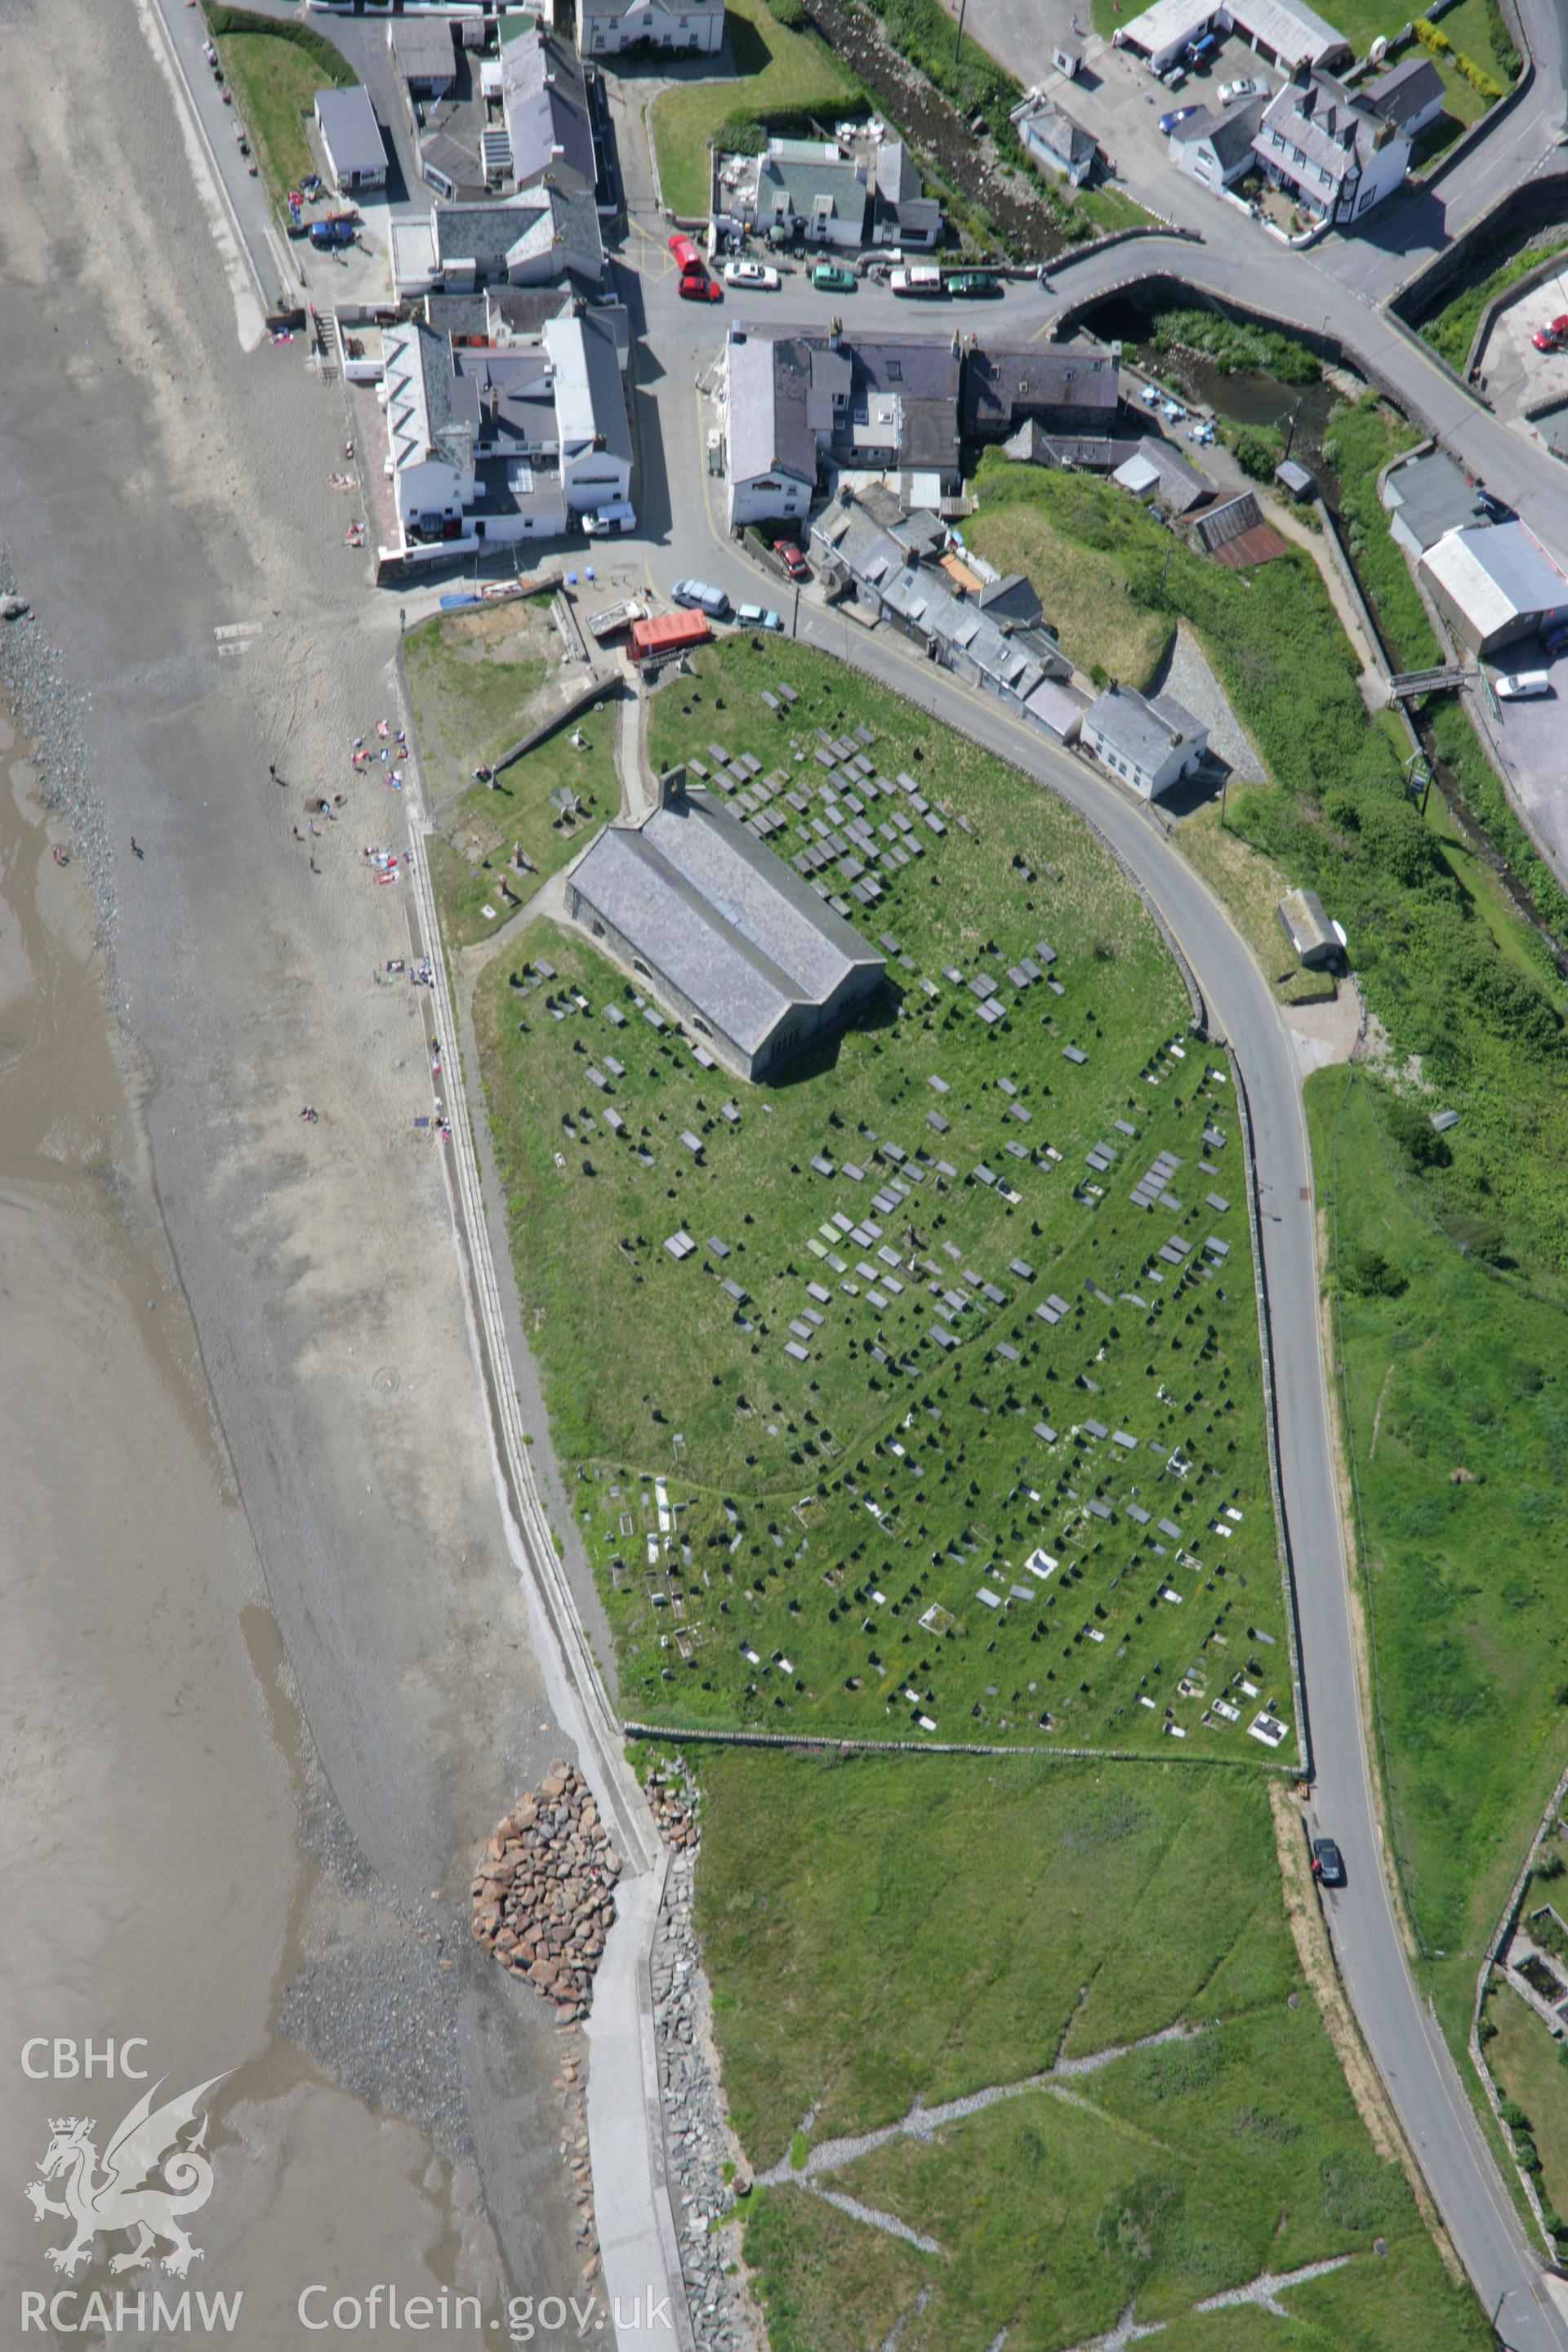 RCAHMW colour oblique aerial photograph of St Hywyns Church, Aberdaron, from the east. Taken on 14 June 2006 by Toby Driver.